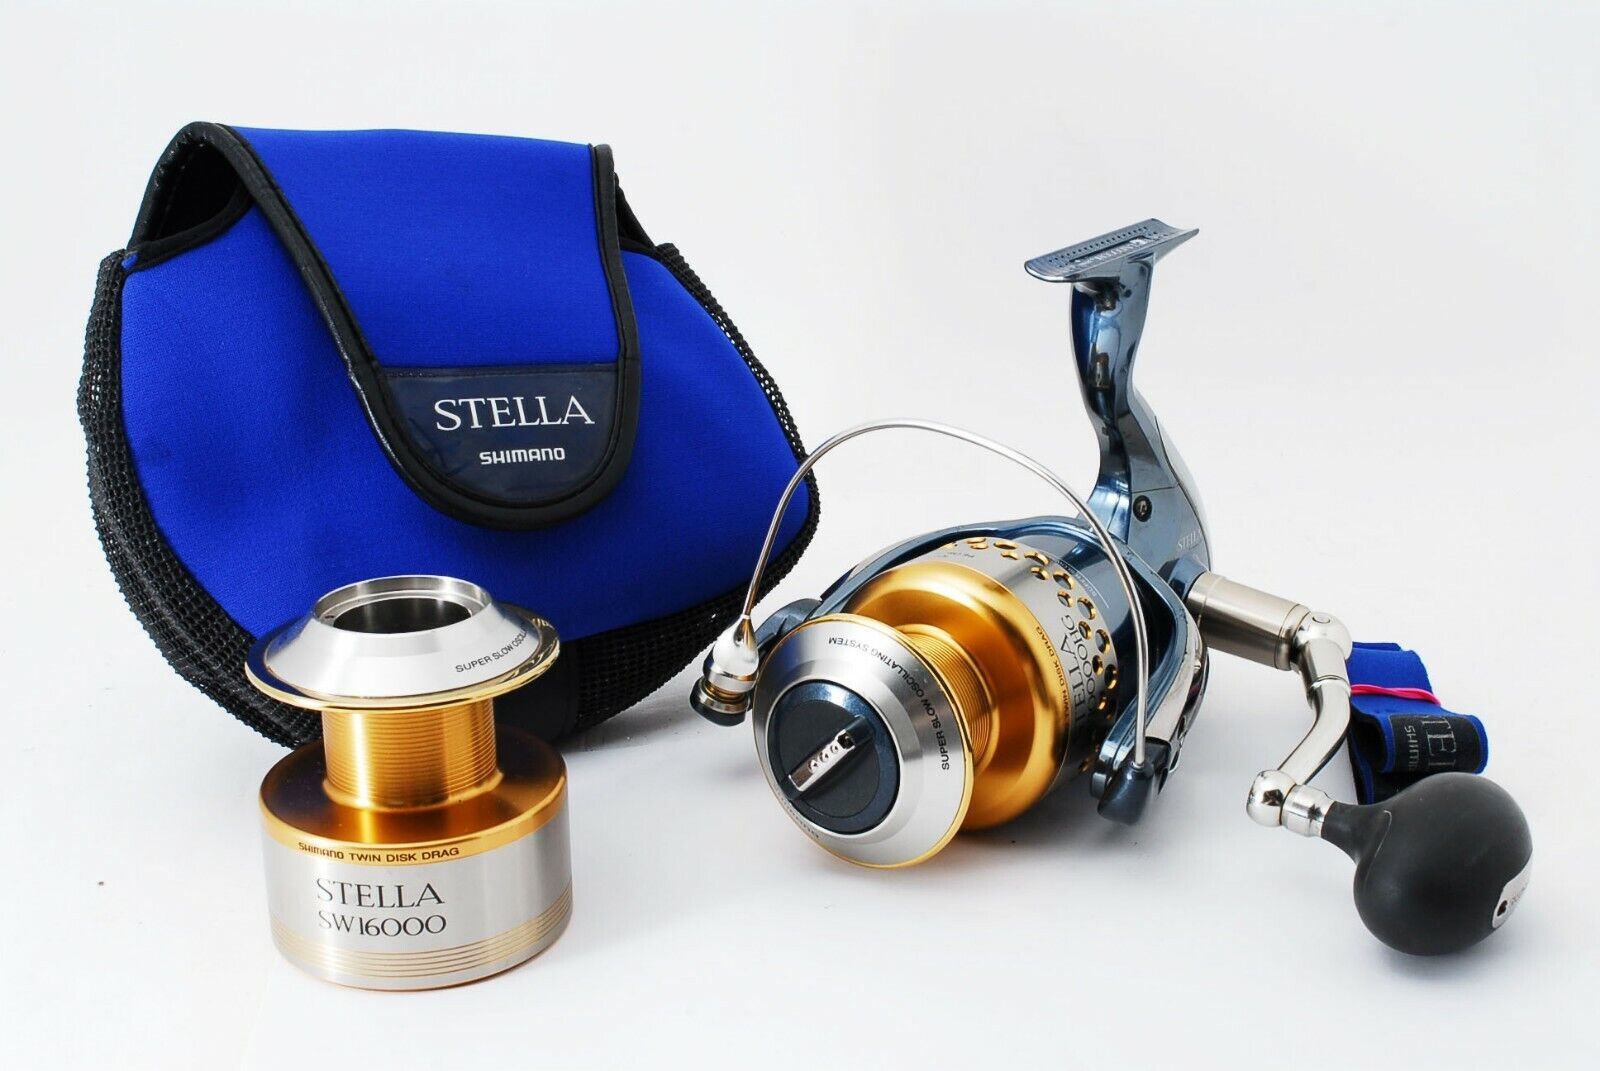 Excellent++ Shimano 01 STELLA SW 10000HG Spinning Reel 407187   discount sales